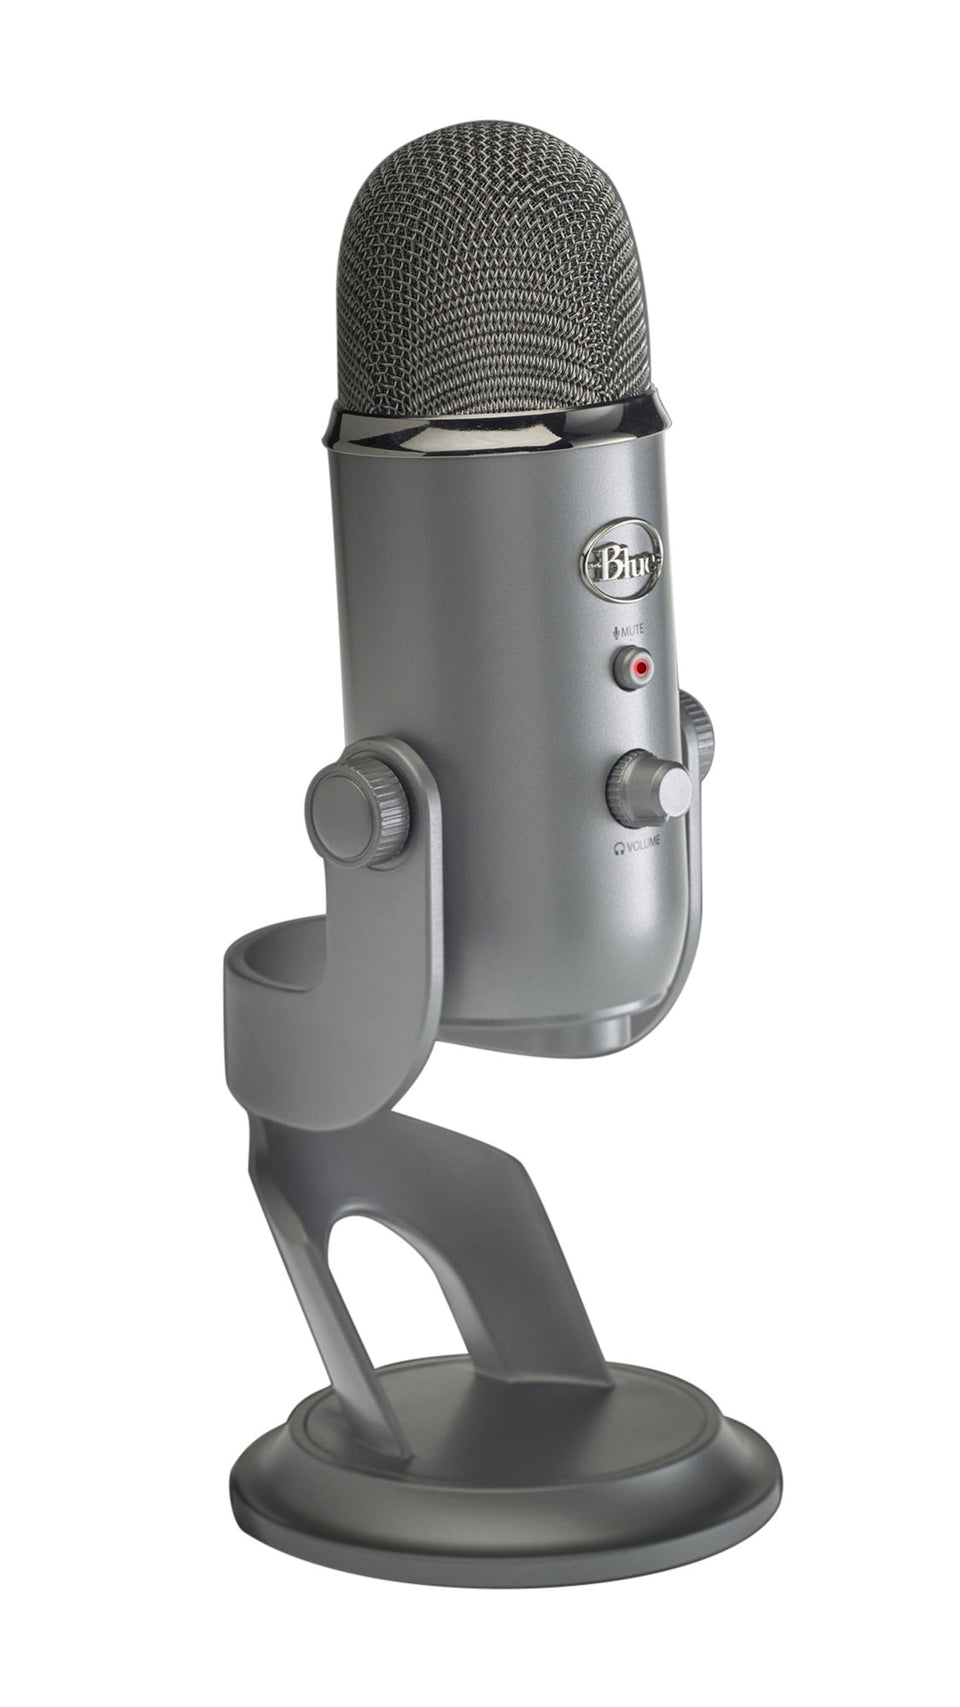 Blue Microphone Yeti Studio Condenser USB Vocal Mic w/ Software